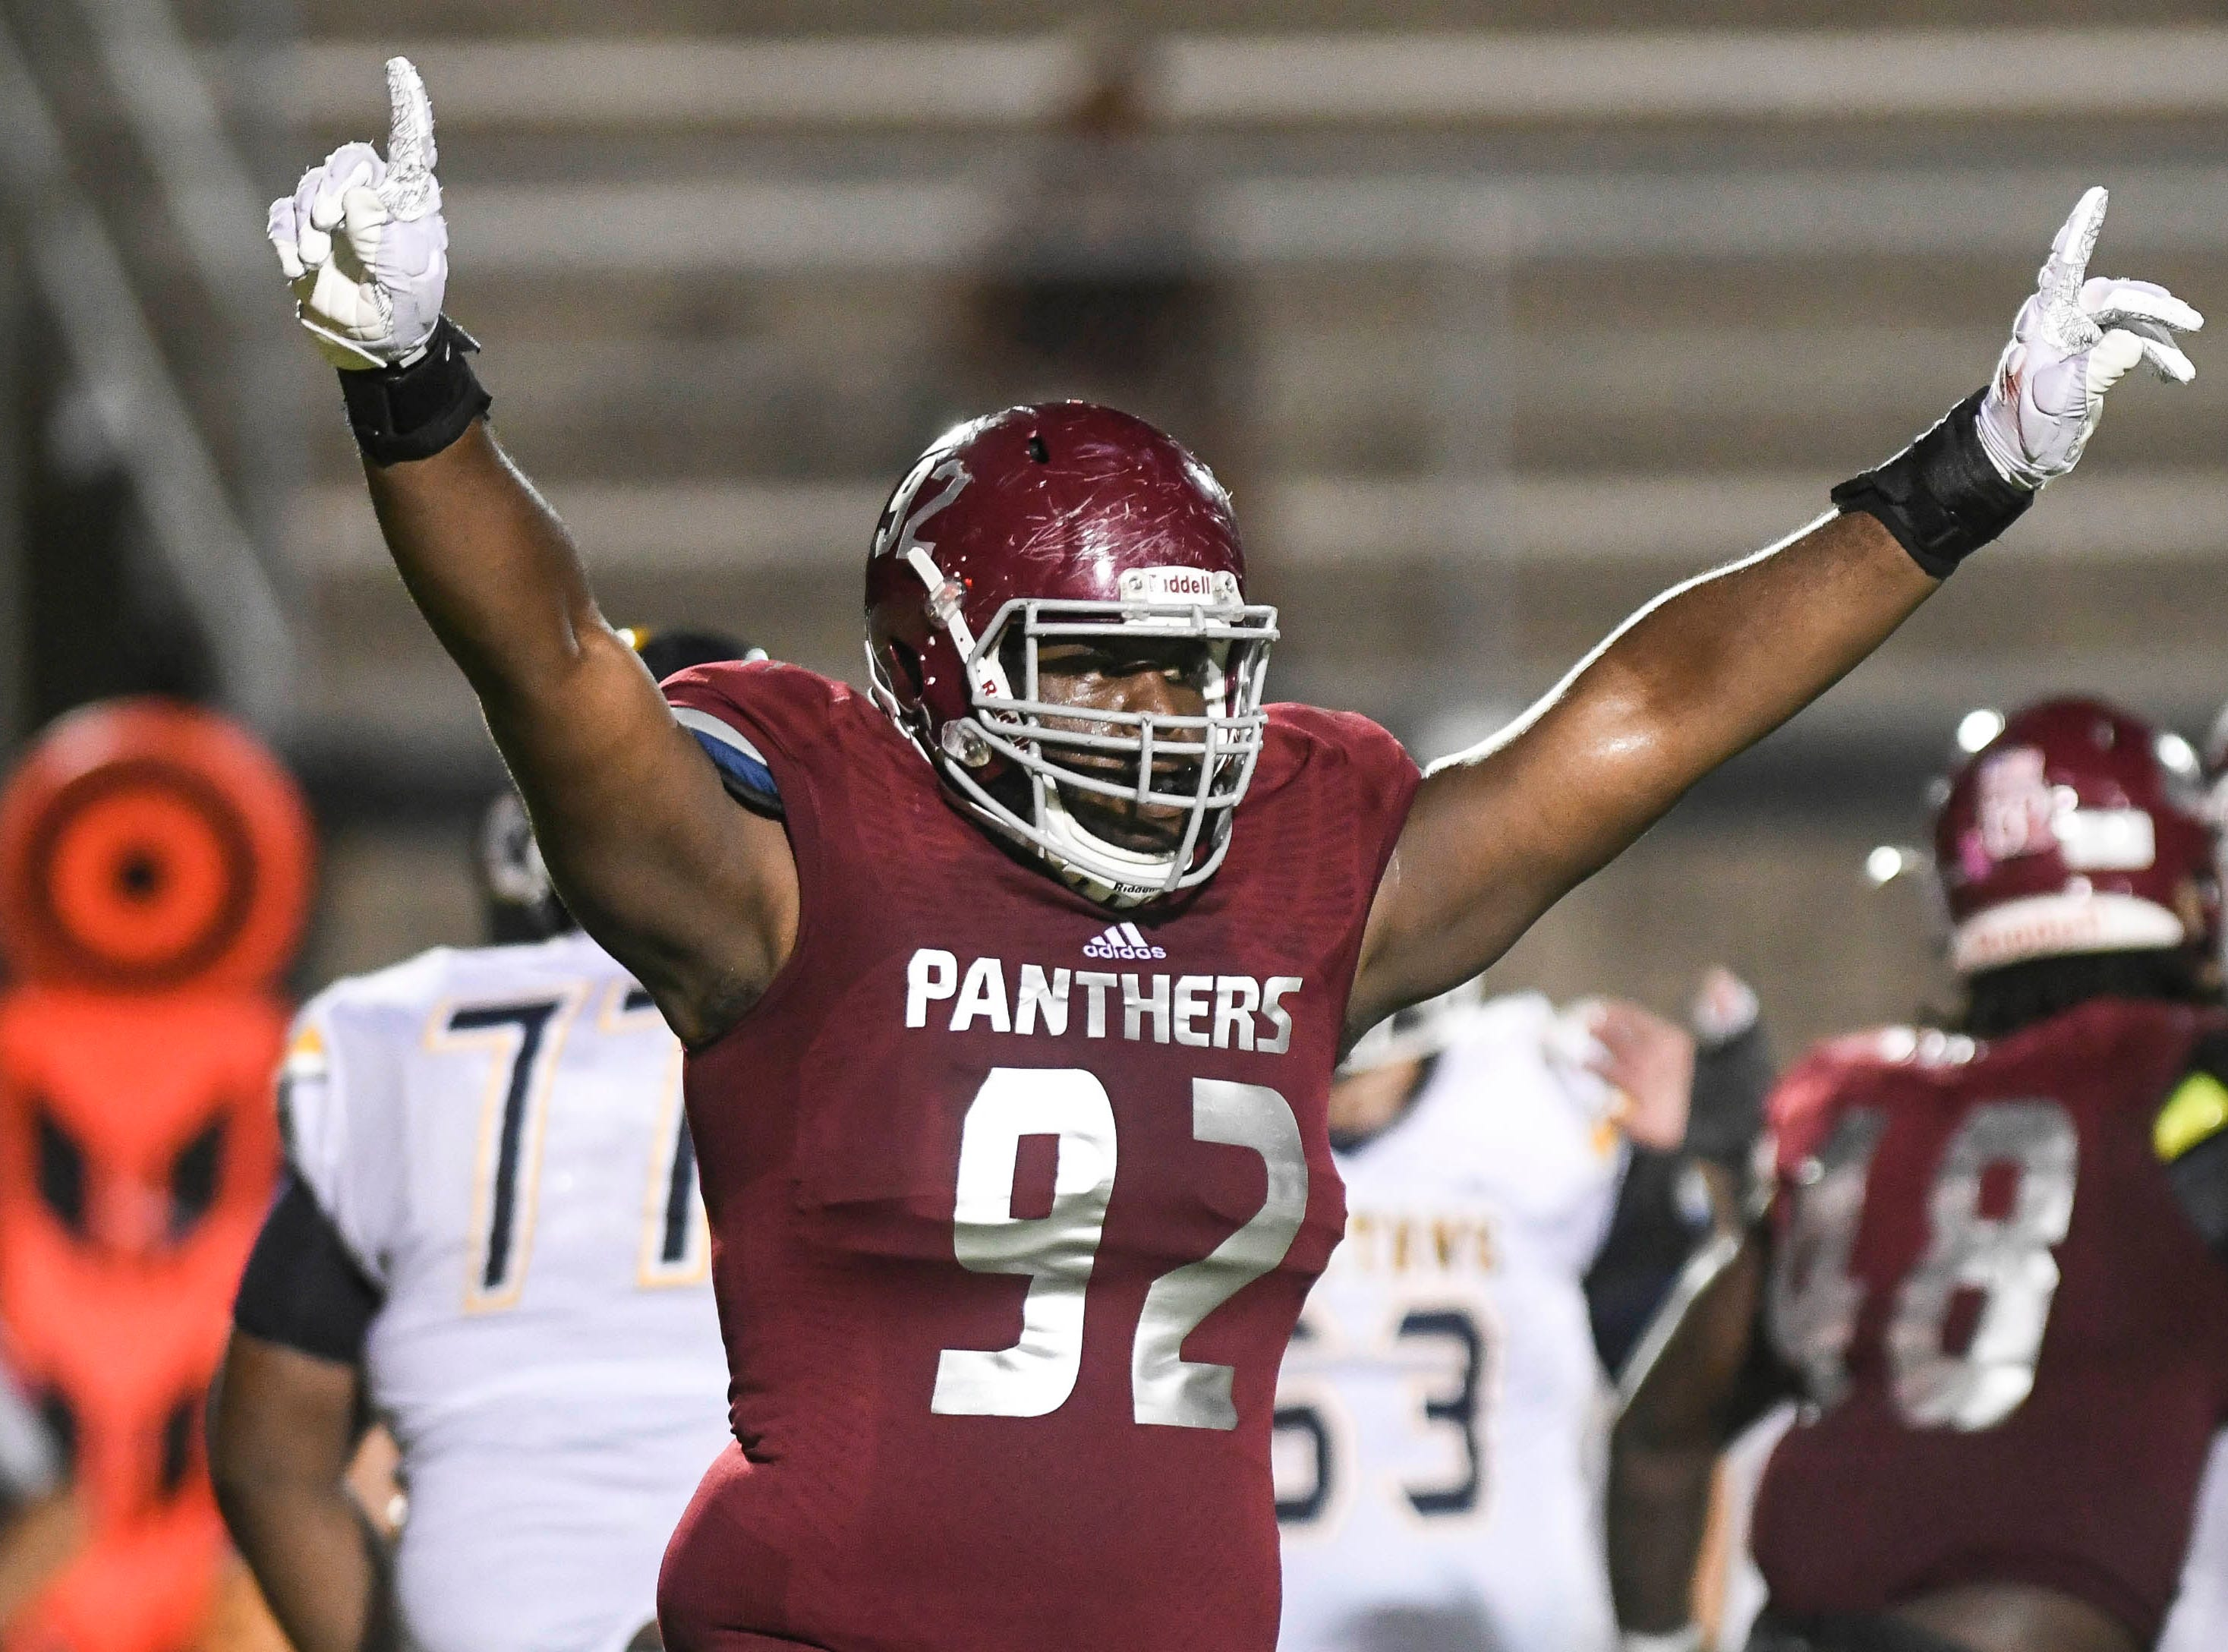 Braxton Larmond of Florida Tech celebrates a defensive play during Saturday's game at Panther Stadium